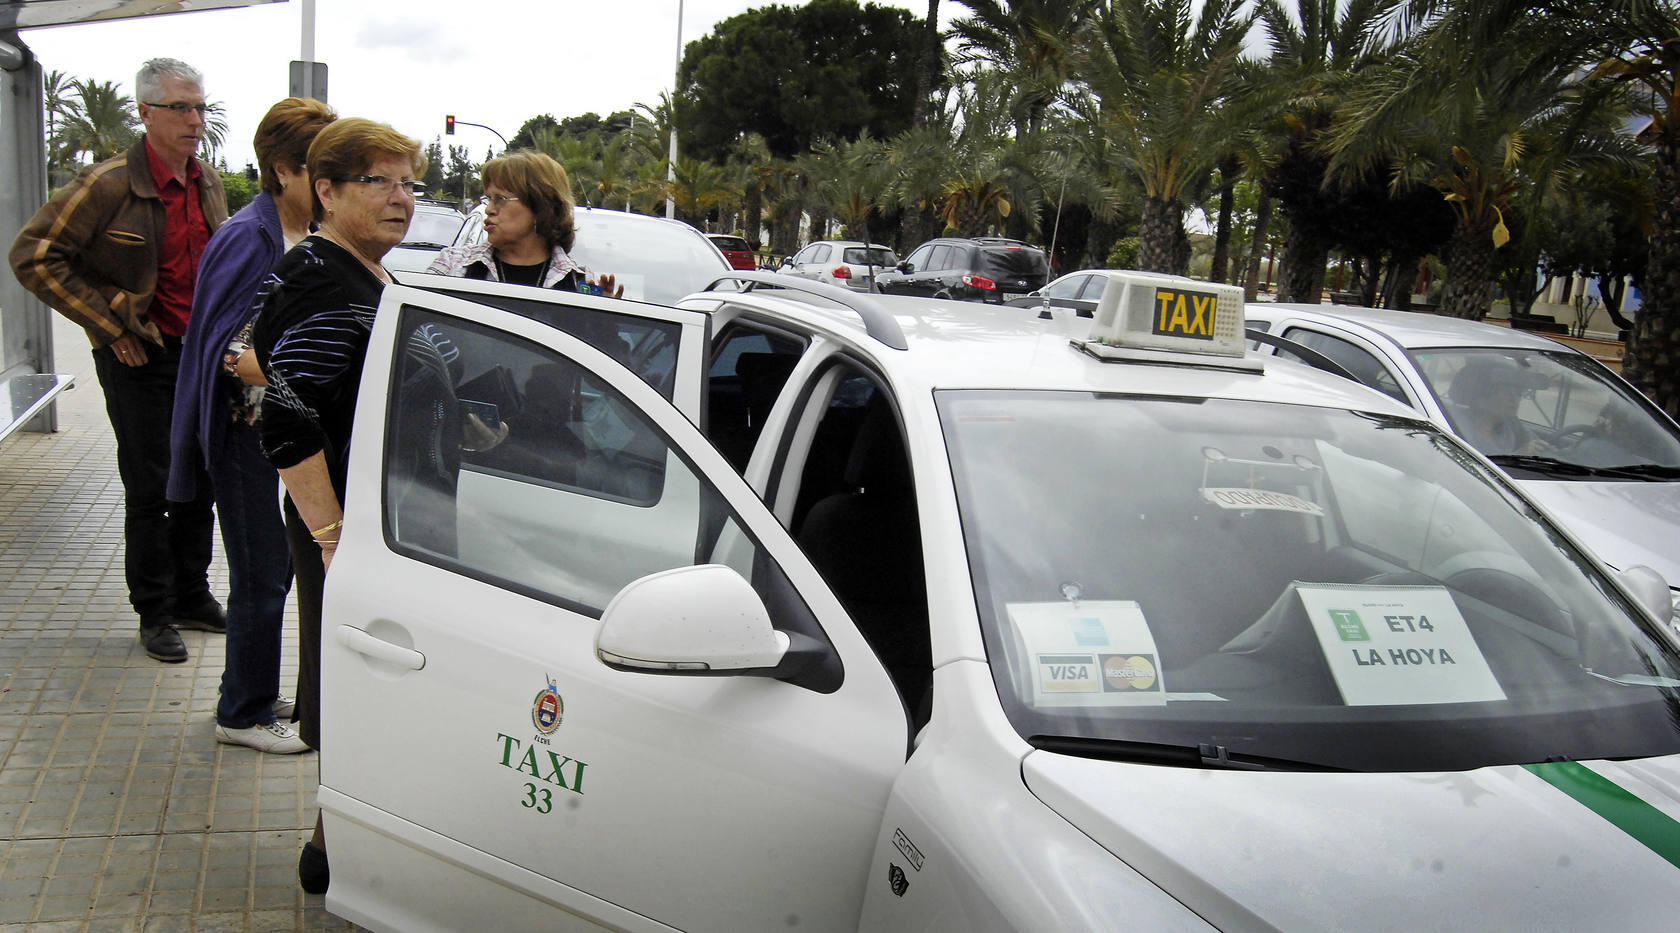 El servicio de Elche Taxi se pone en marcha con 50 personas inscritas